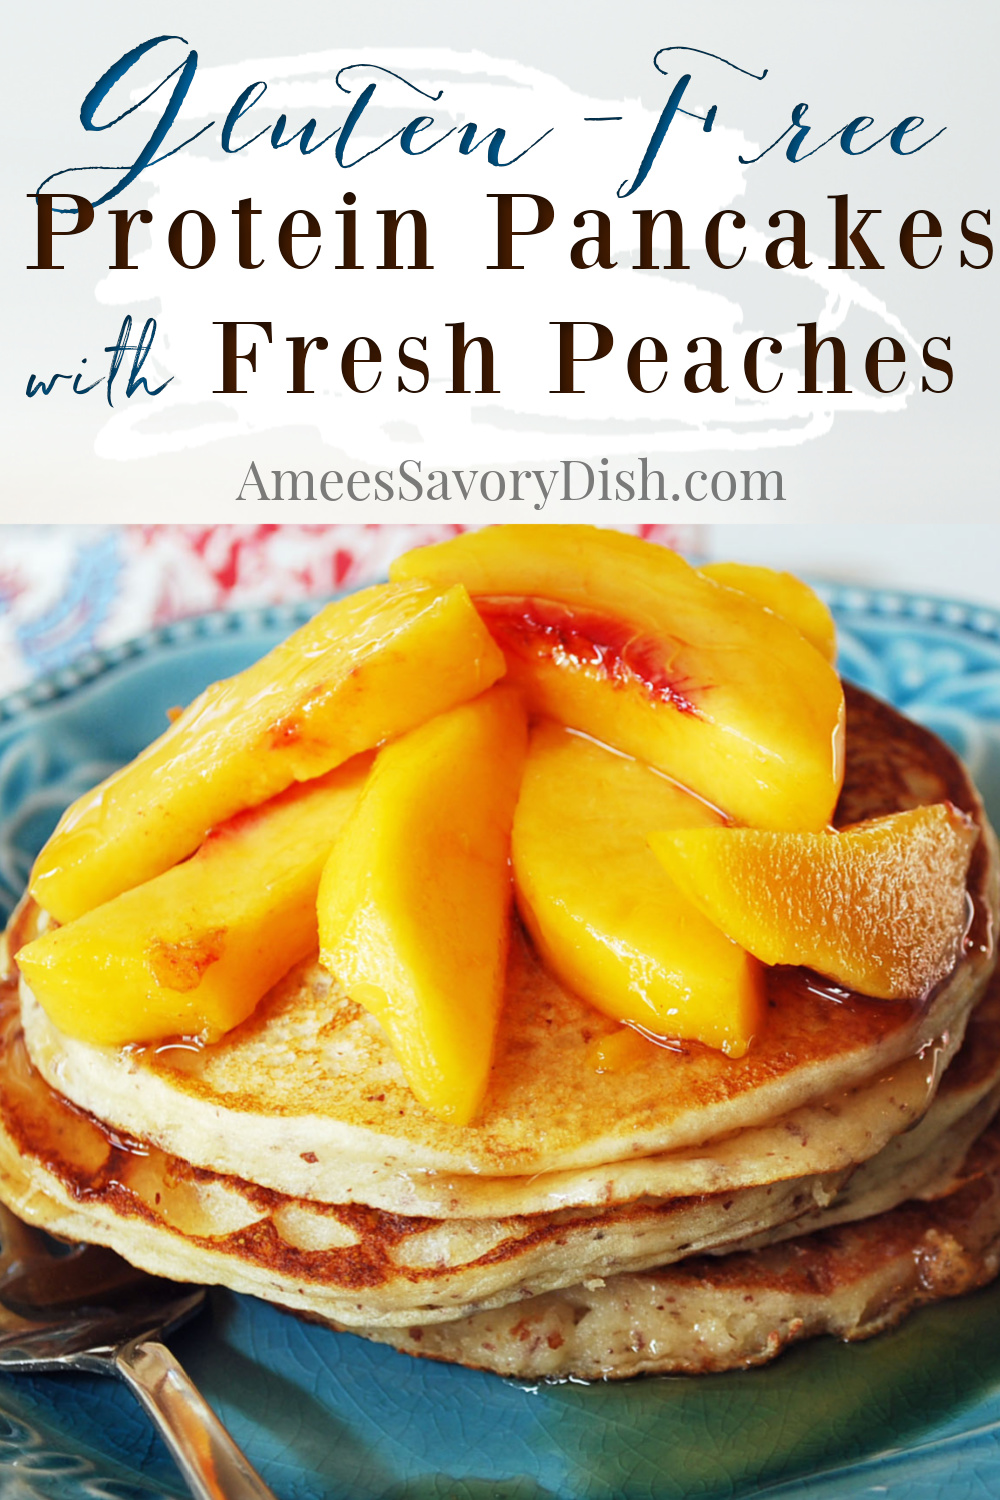 A fluffy and delicious recipe for gluten-free protein pancakes made with casein protein powder and topped with fresh summer peaches. #proteinpancakes #glutenfreepancakes #pancakes #glutenfreepancakes via @Ameessavorydish